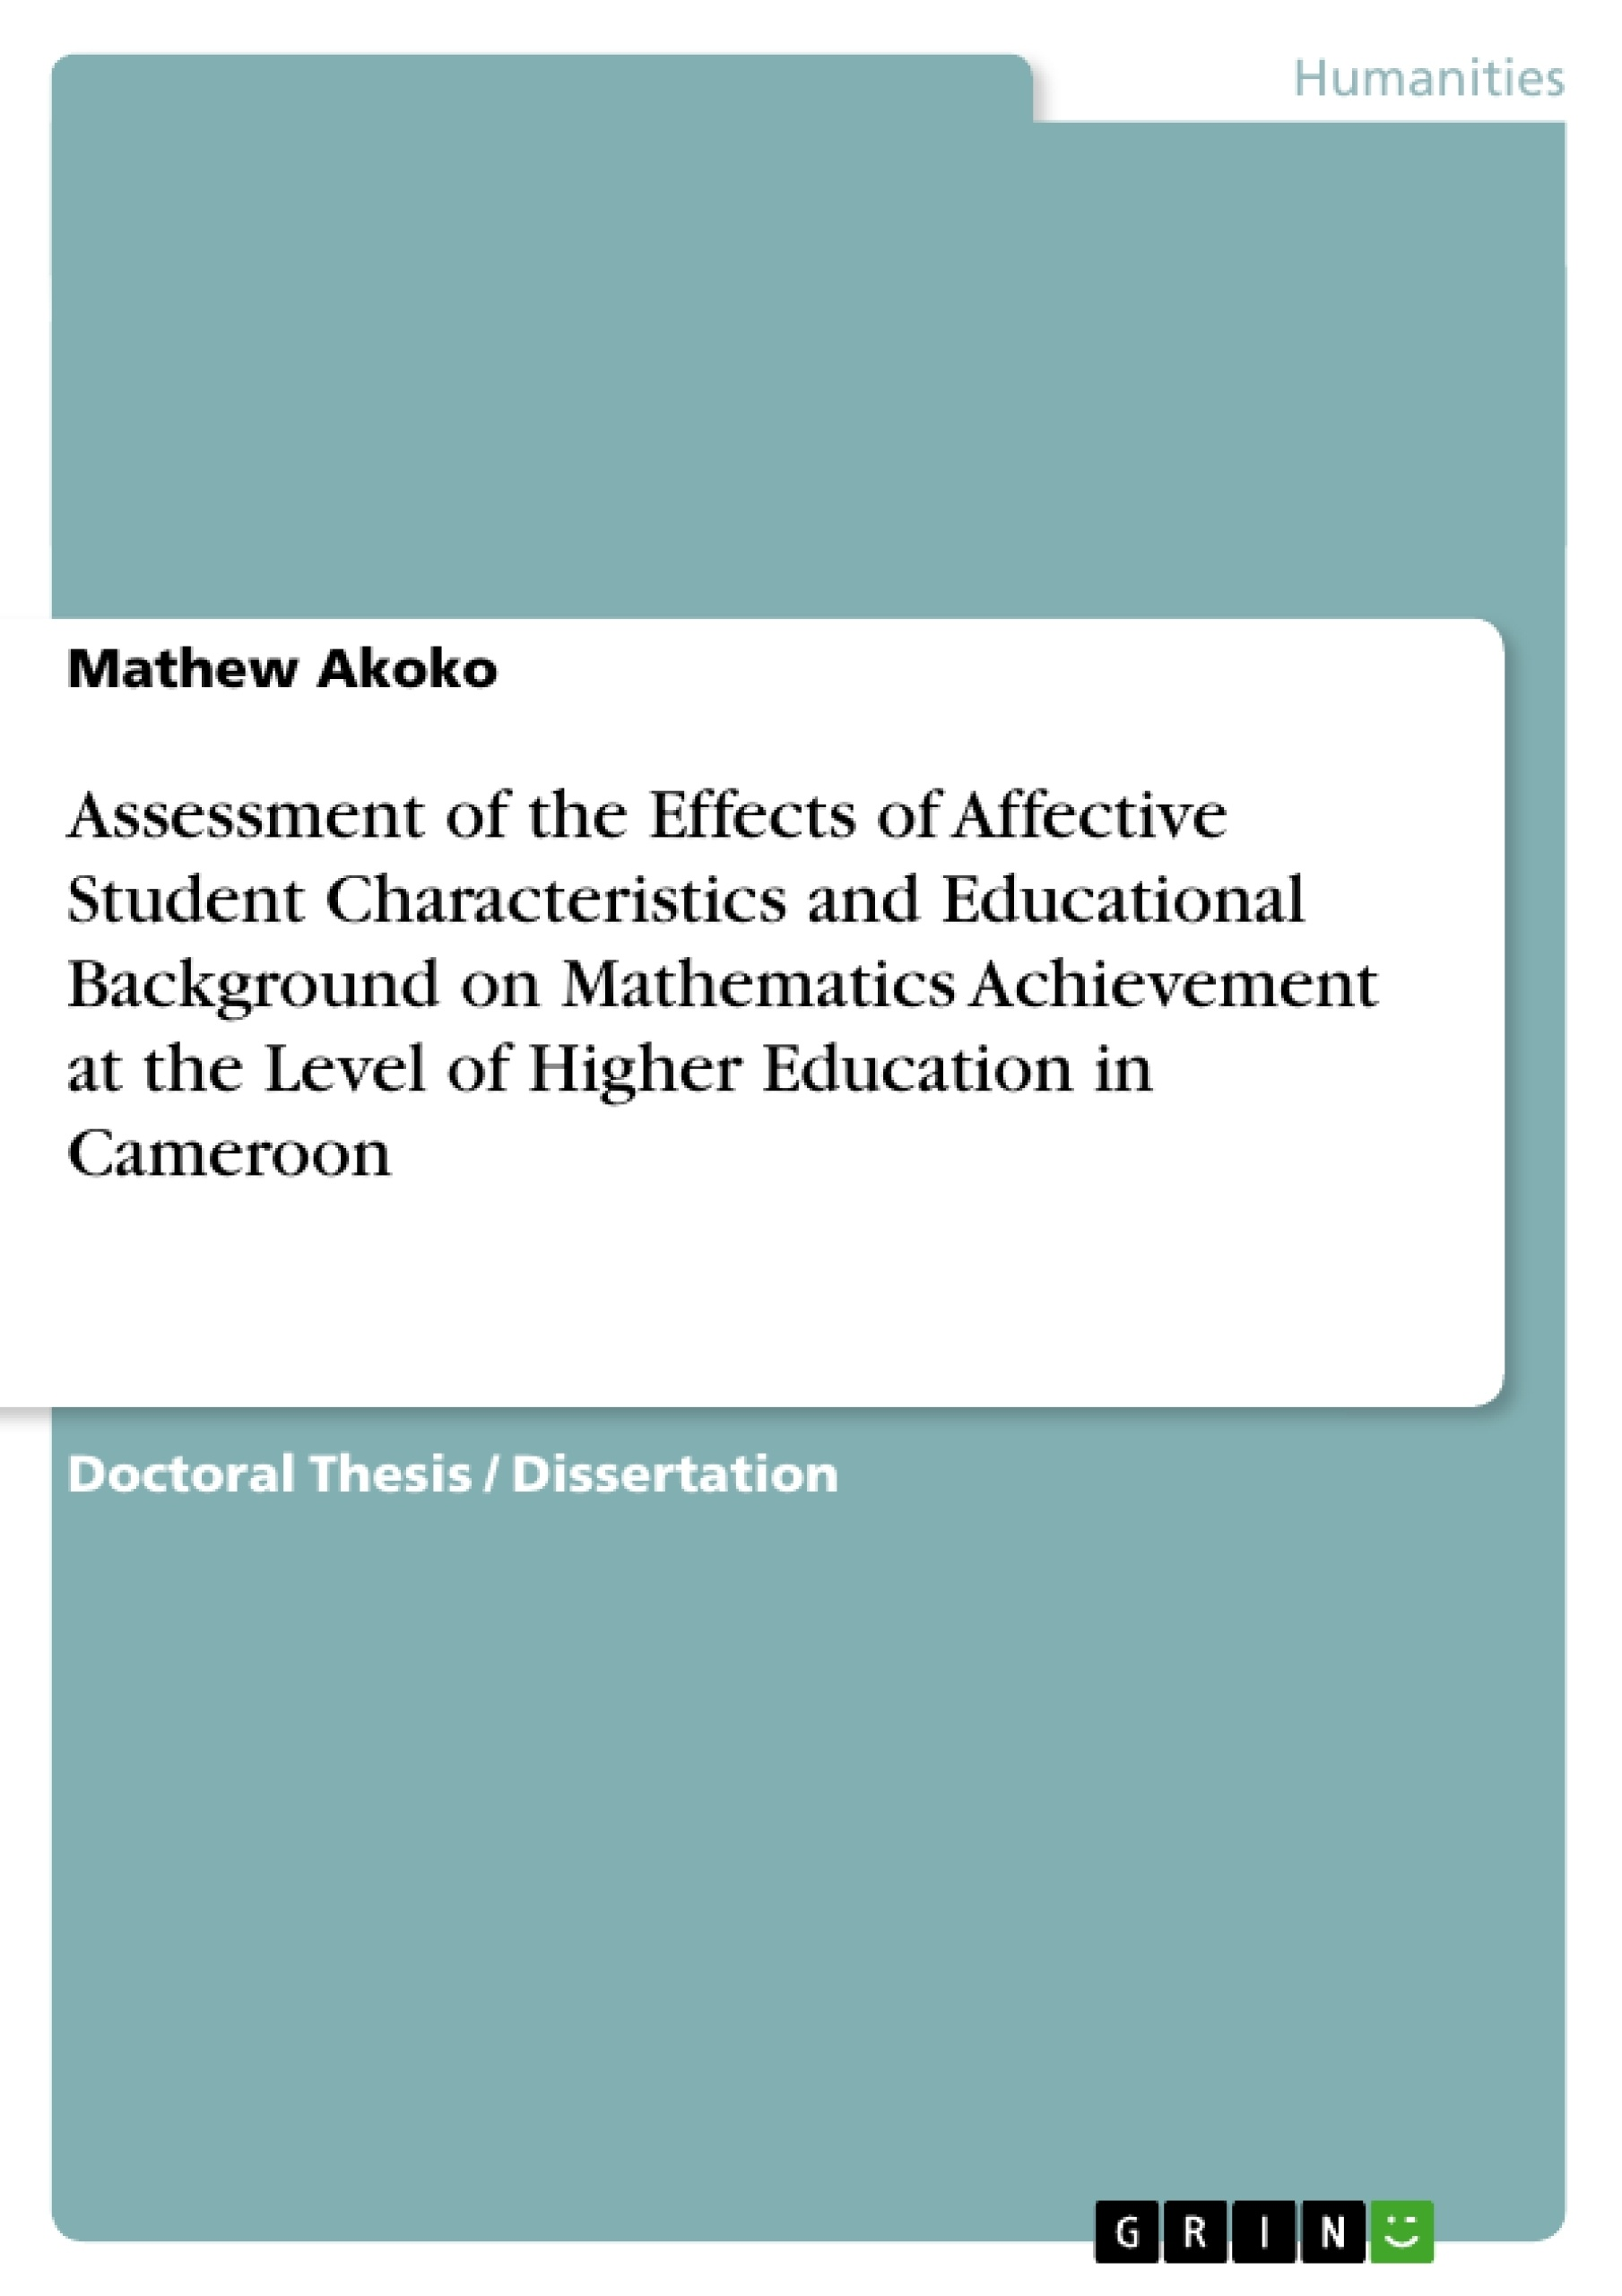 Title: Assessment of the Effects of Affective Student Characteristics and Educational Background on Mathematics Achievement at the Level of Higher Education in Cameroon